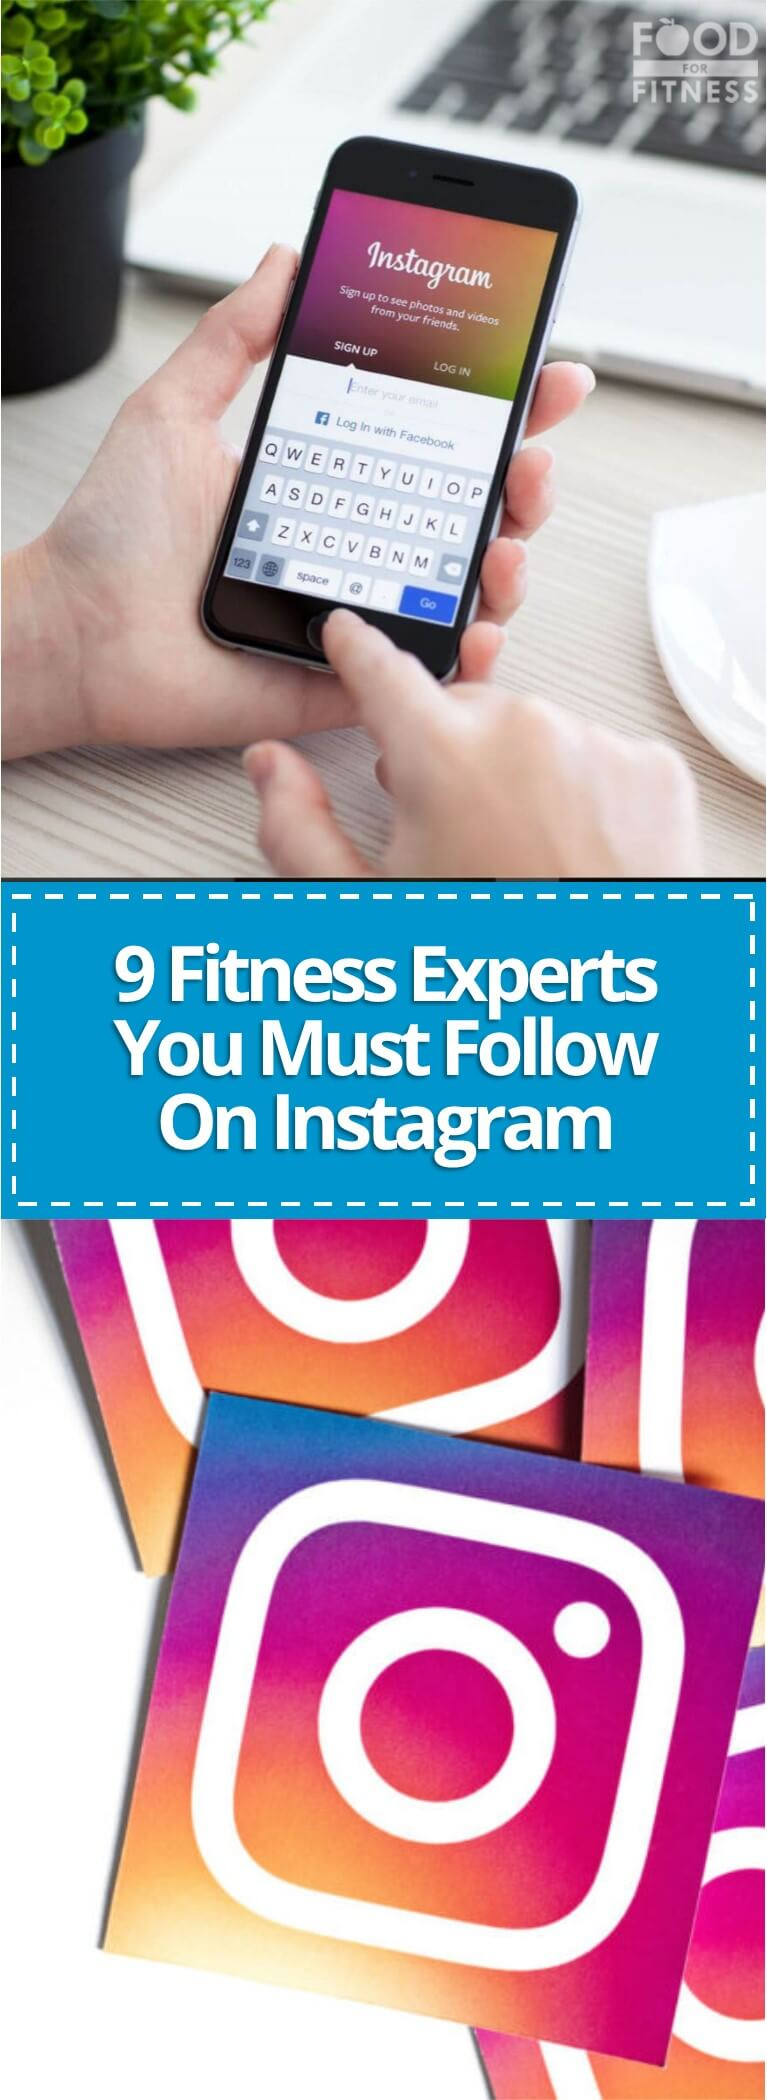 9 Fitness Experts You Must Follow On Instagram